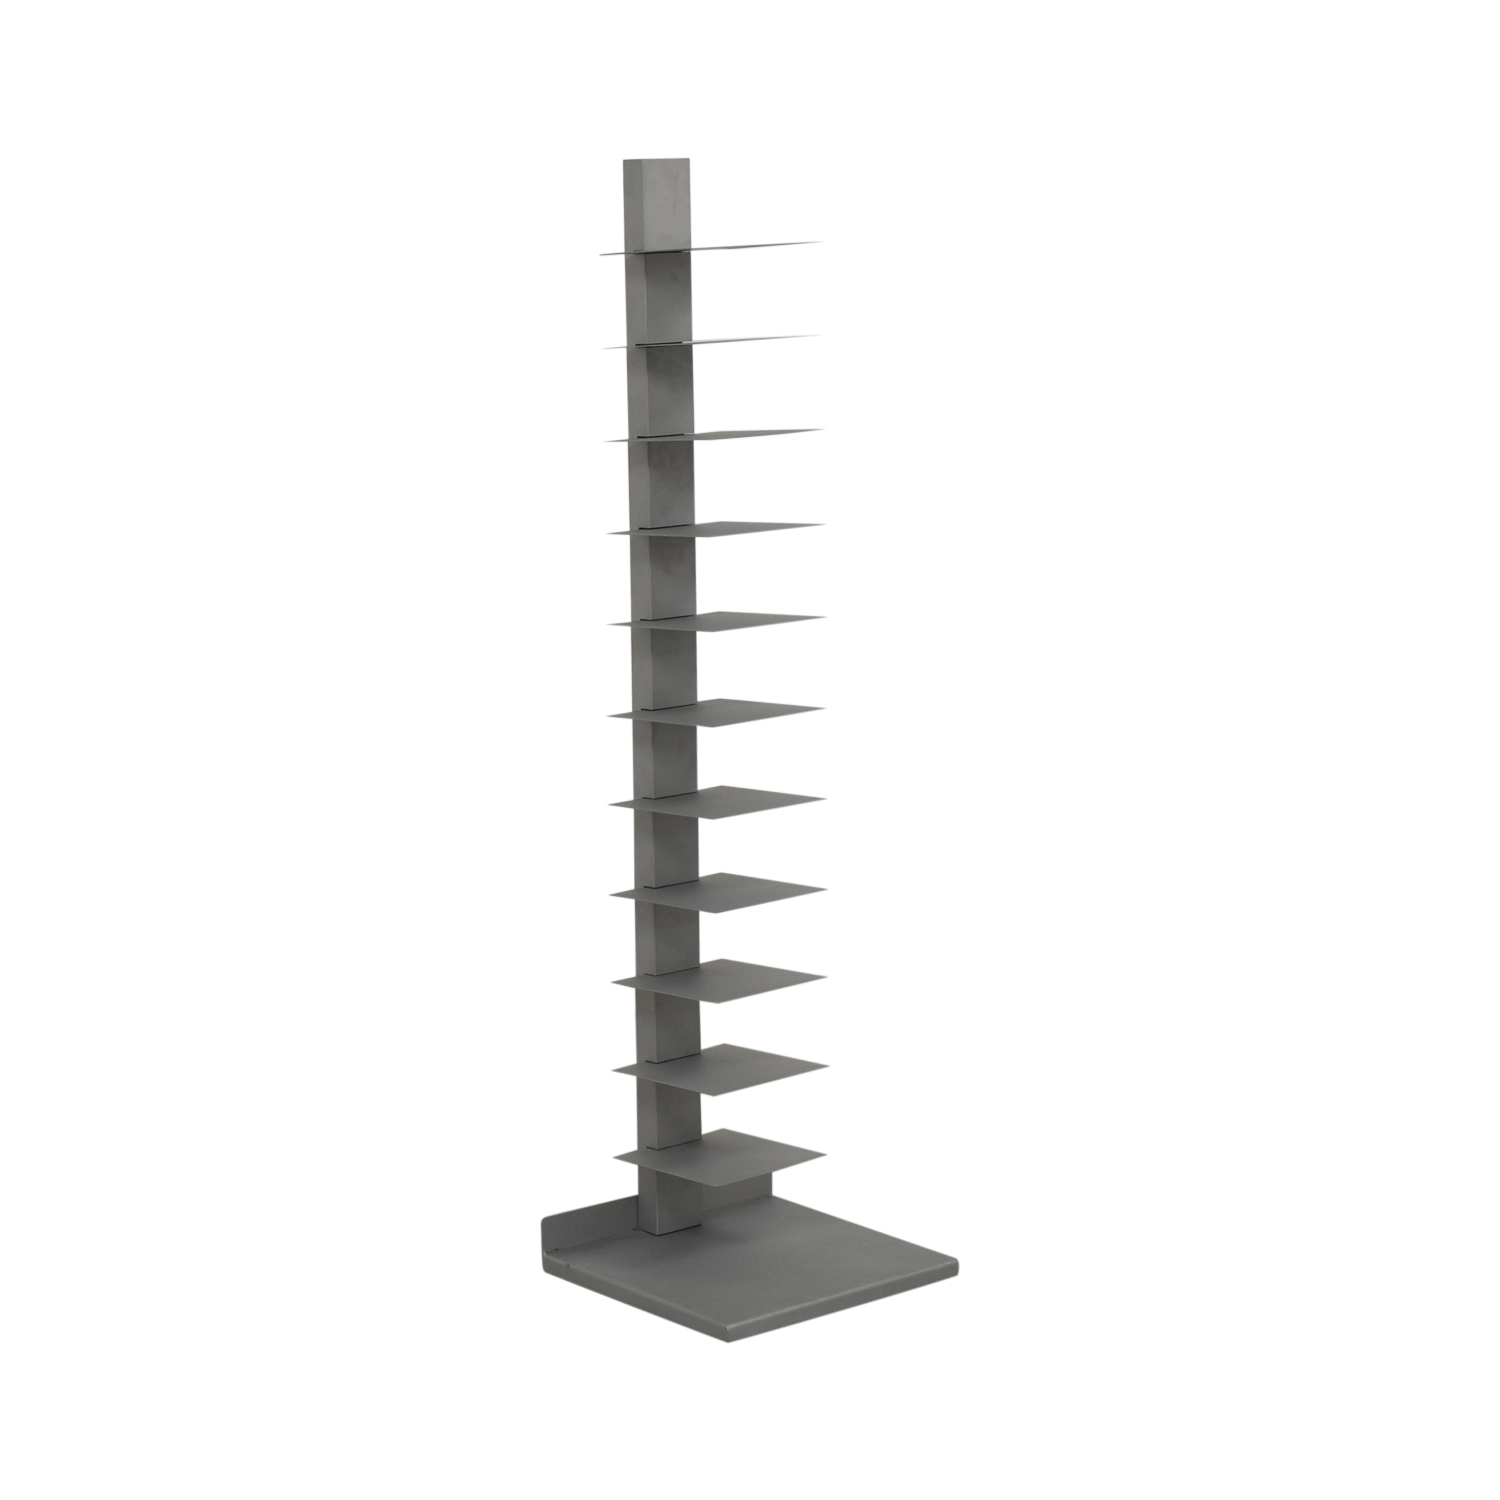 CB2 CB2 Spine Array Bookcase Bookcases & Shelving